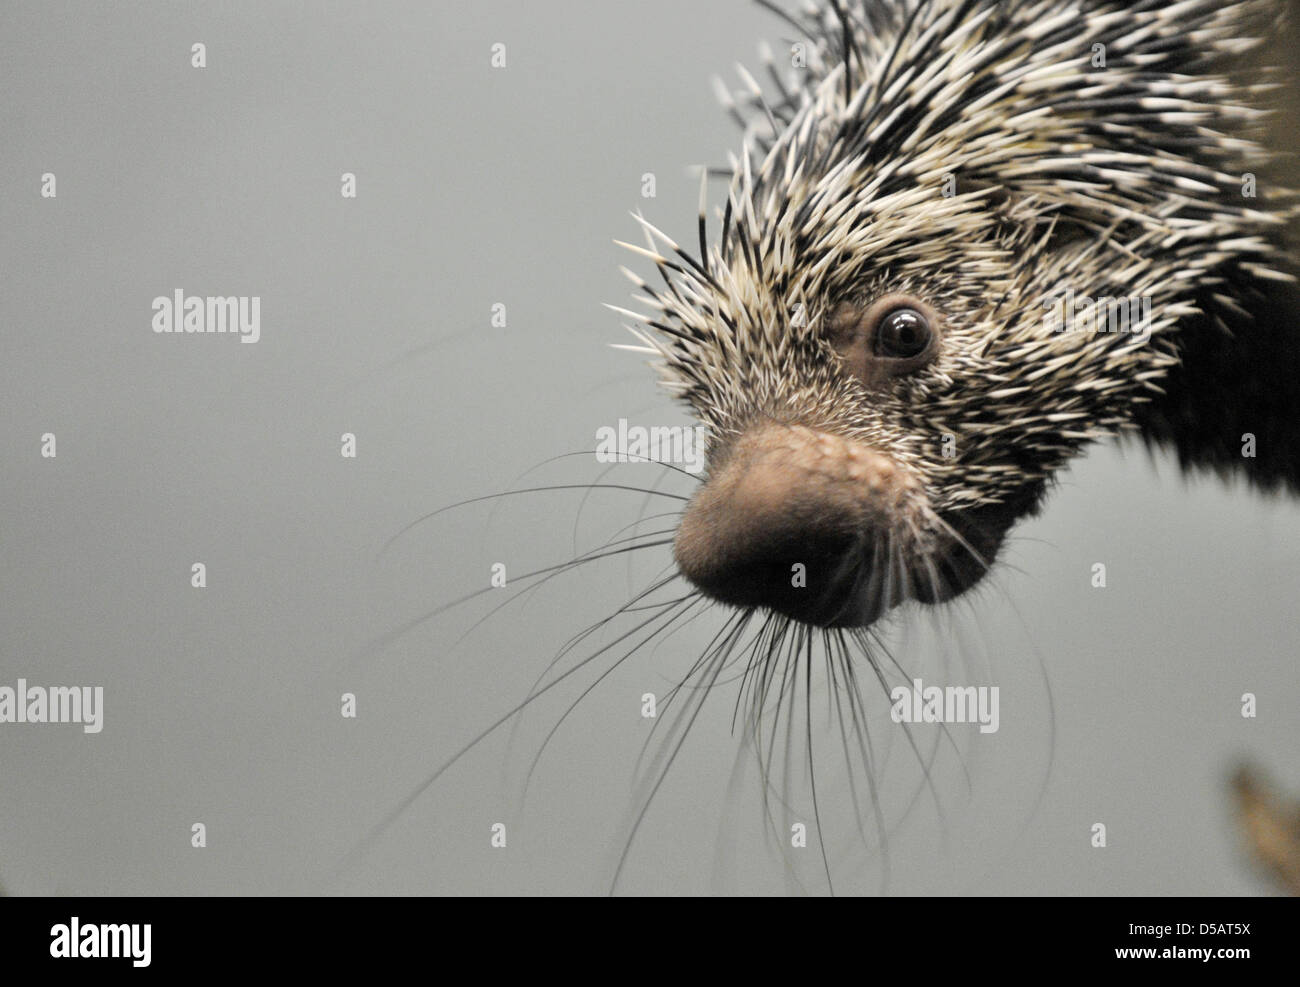 With great interest, this female Prehensile-tailed porcupine, or coendous, eyes the cameramen and photographeres - Stock Image